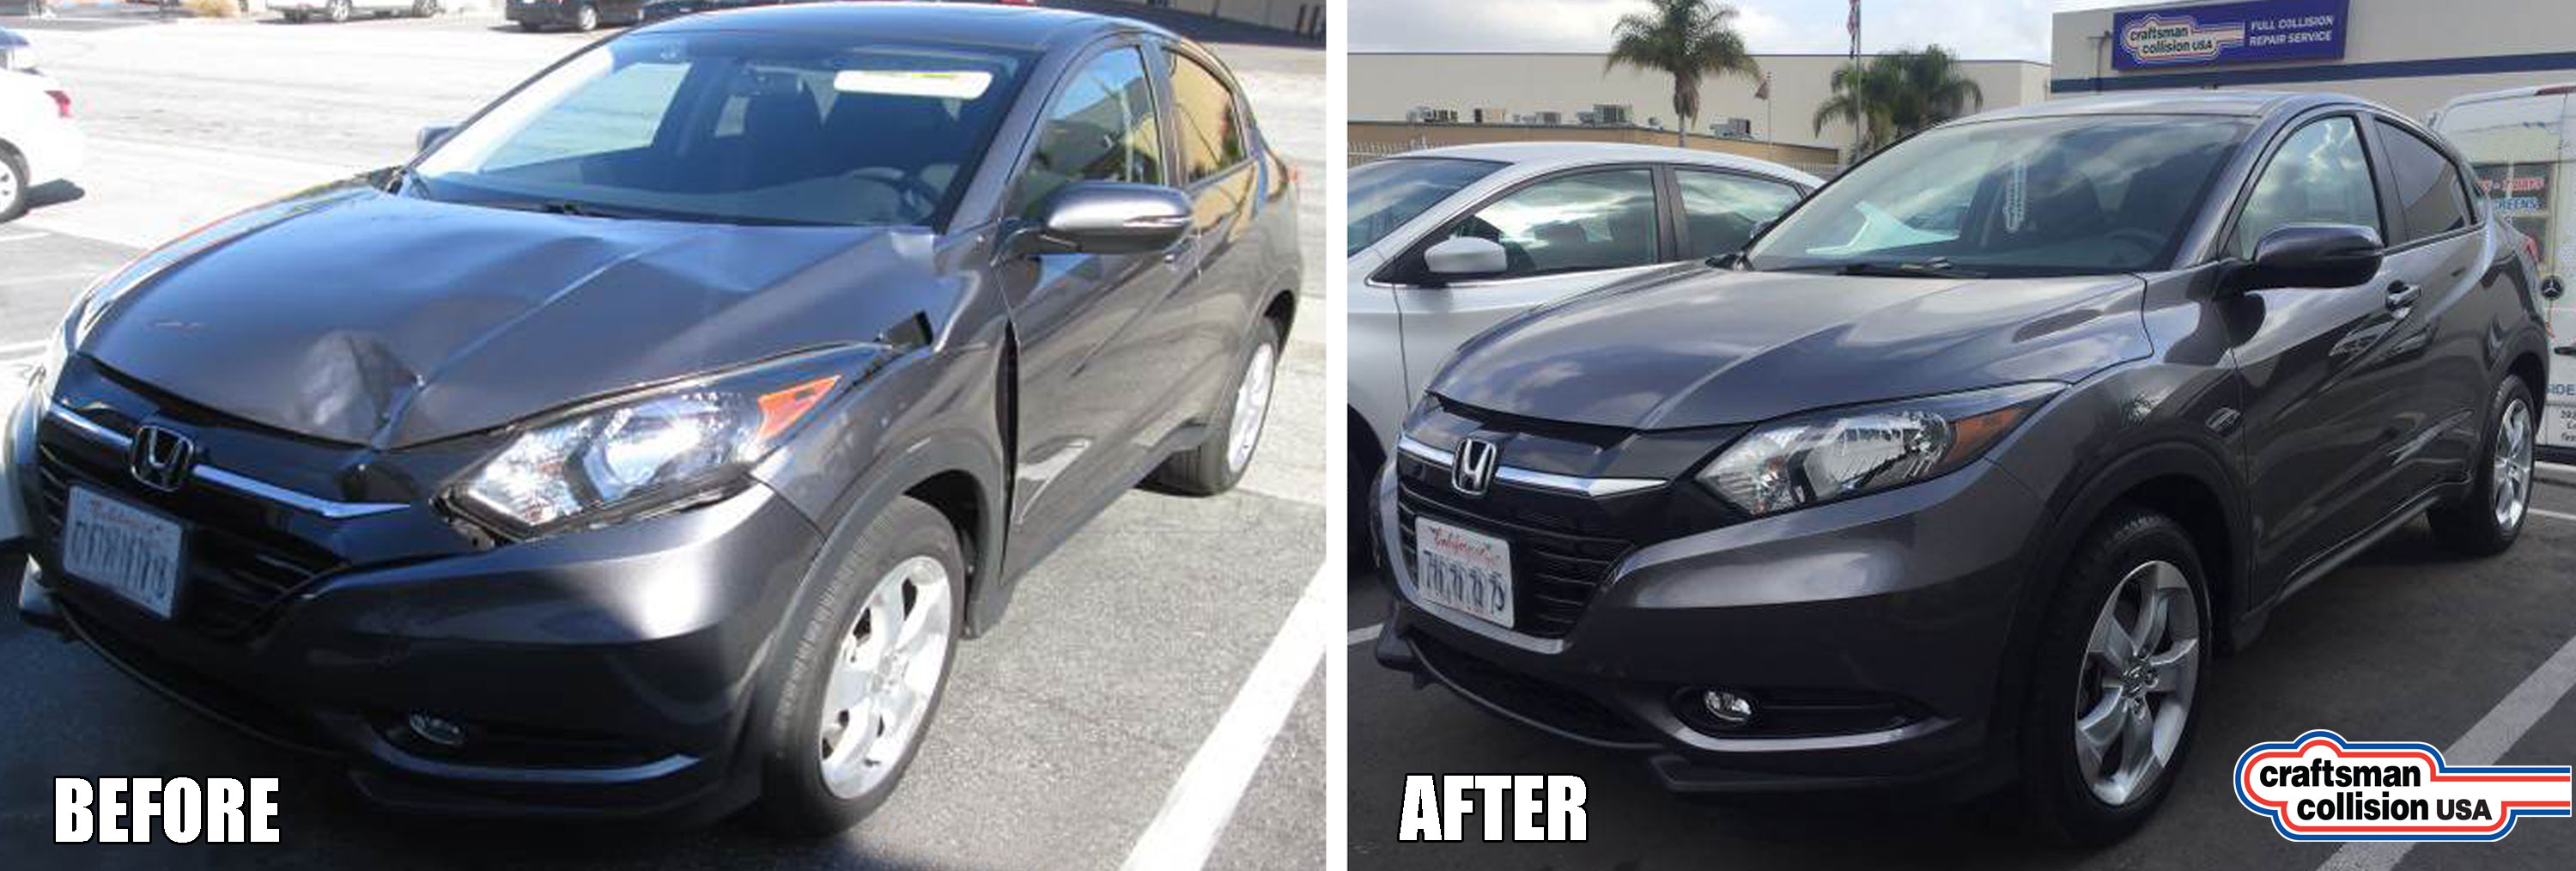 Honda HRV auto body repair